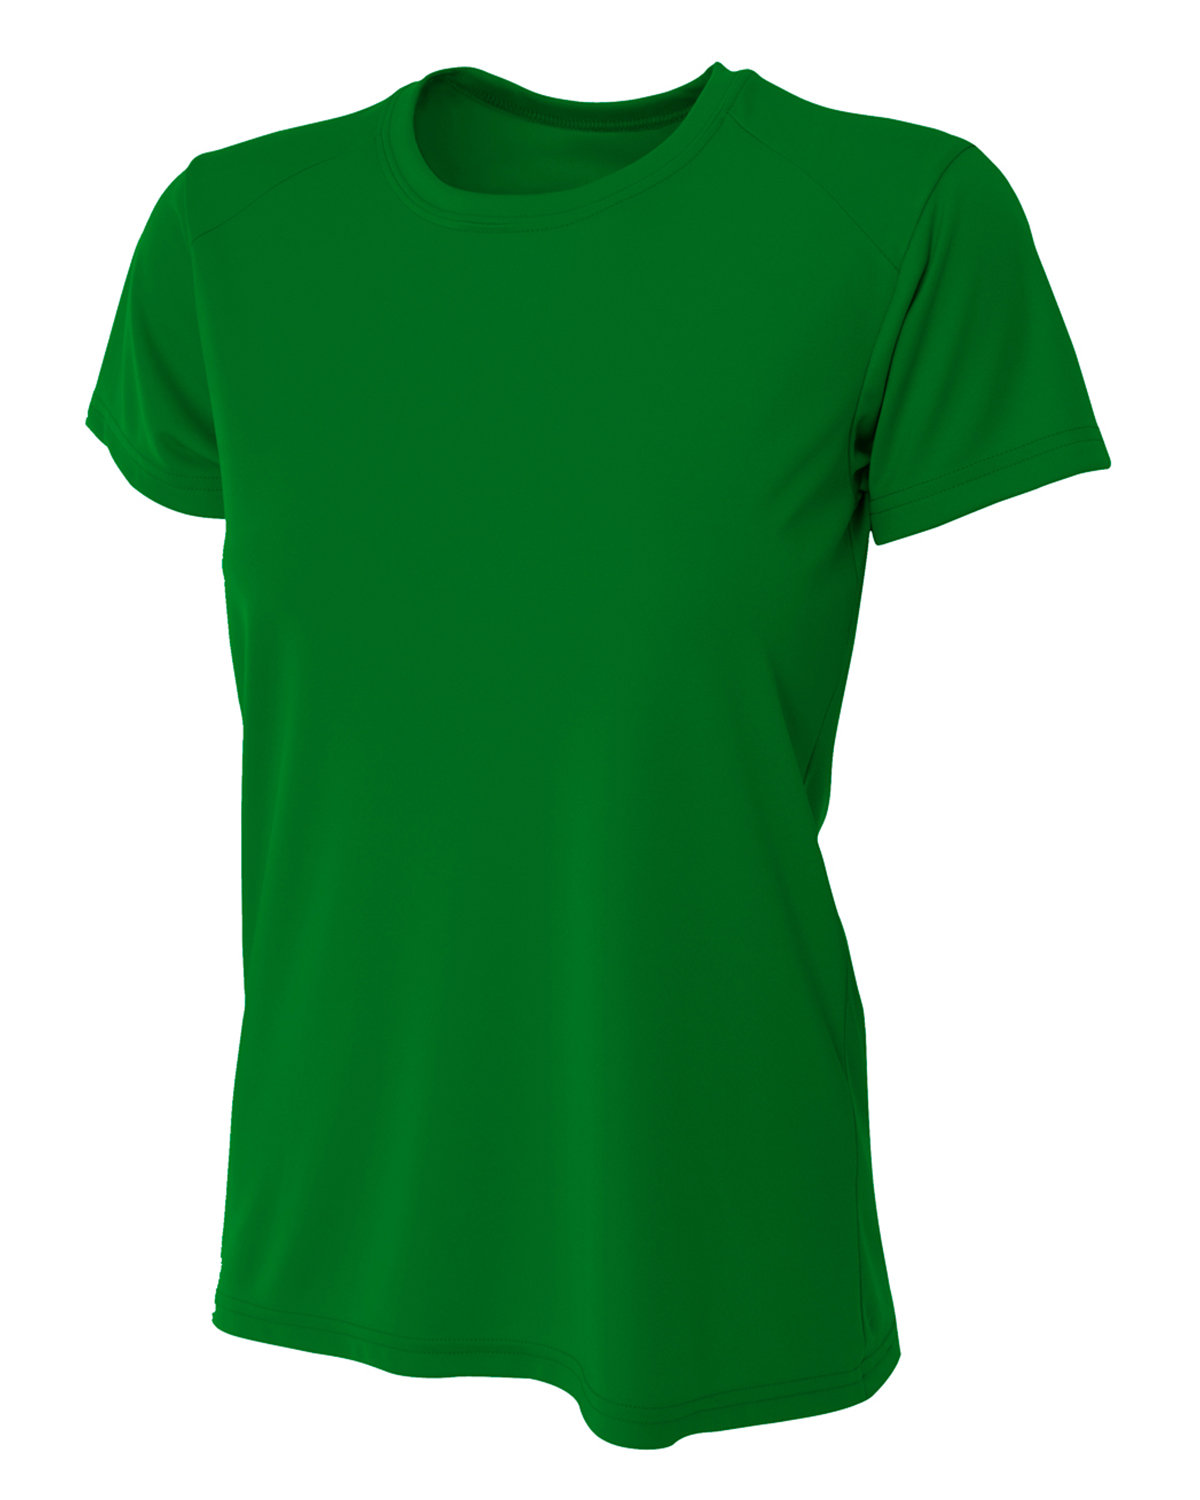 A4 Ladies' Cooling Performance T-Shirt KELLY